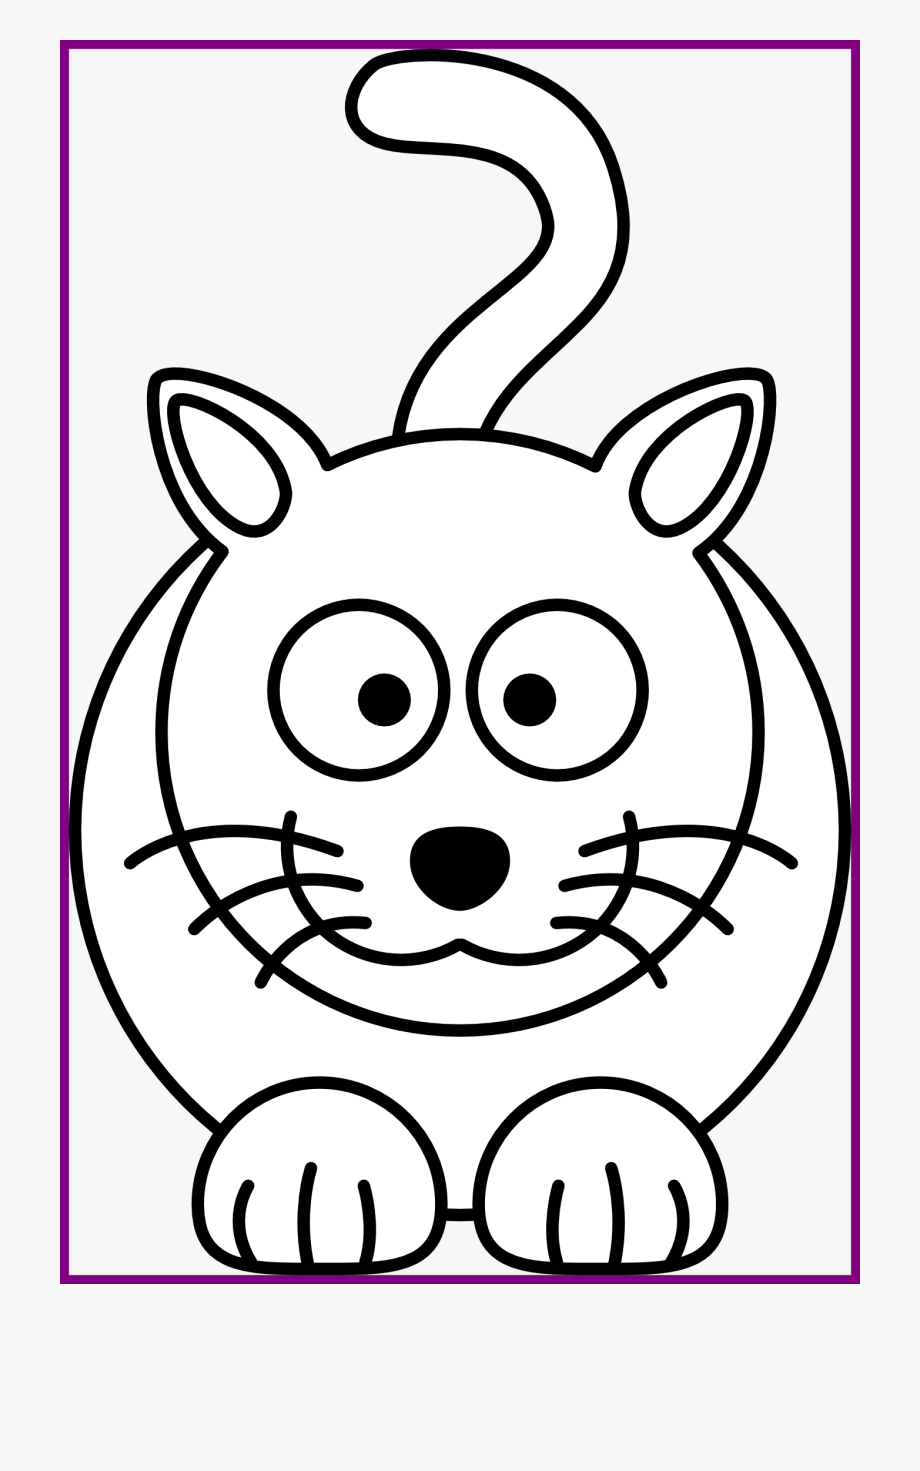 Kawaii kitten outline clipart black and white vector royalty free Best Cat Face Clipart Black And White Pic Of Kitten - Easy ... vector royalty free